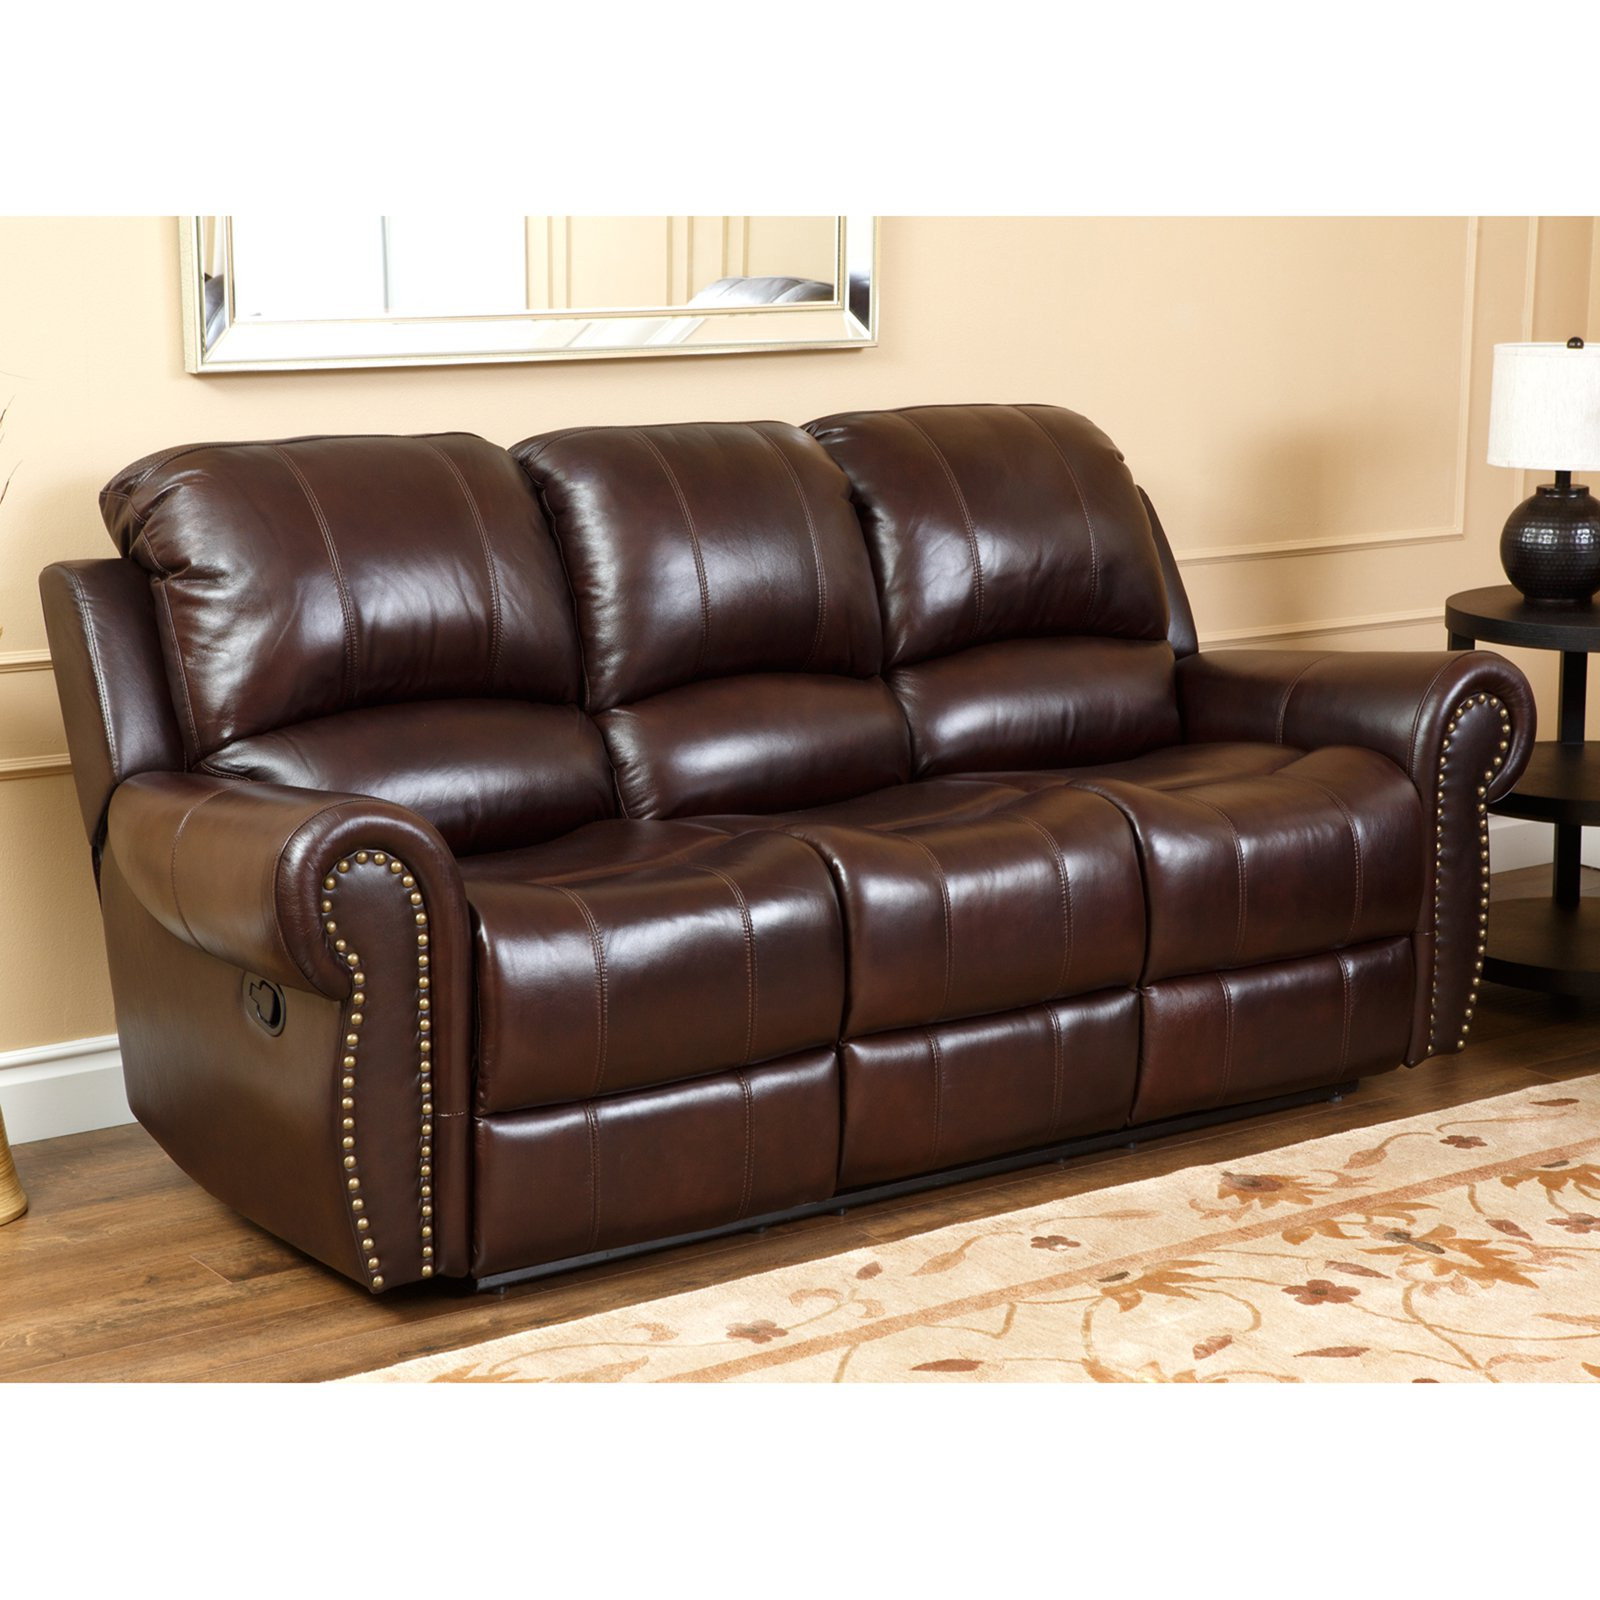 leather sofa set abbyson lexington dark burgundy italian leather reclining loveseat and sofa XWBPEOB